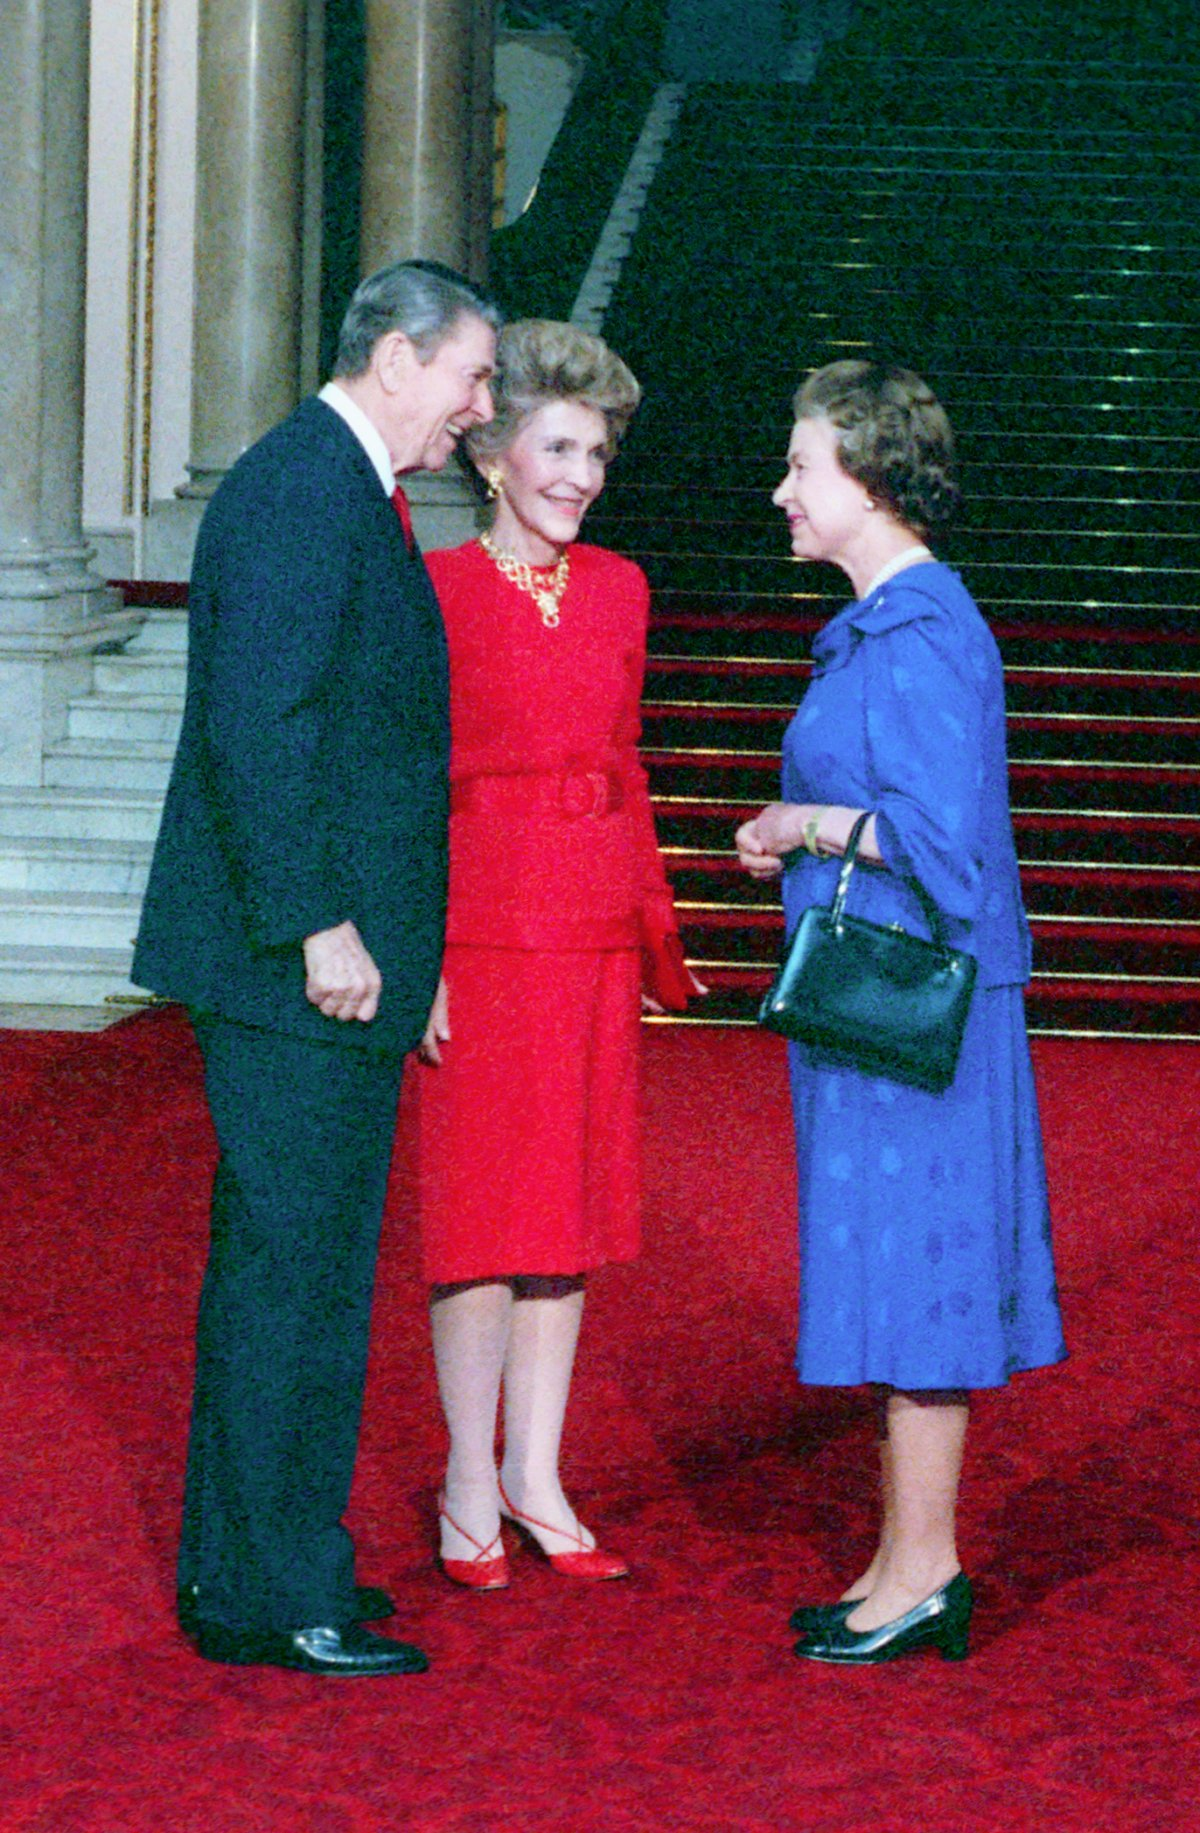 President Ronald Reagan and Nancy Reagan with Queen Elizabeth II During Visit to Buckingham Palace in London, 6/2/1988